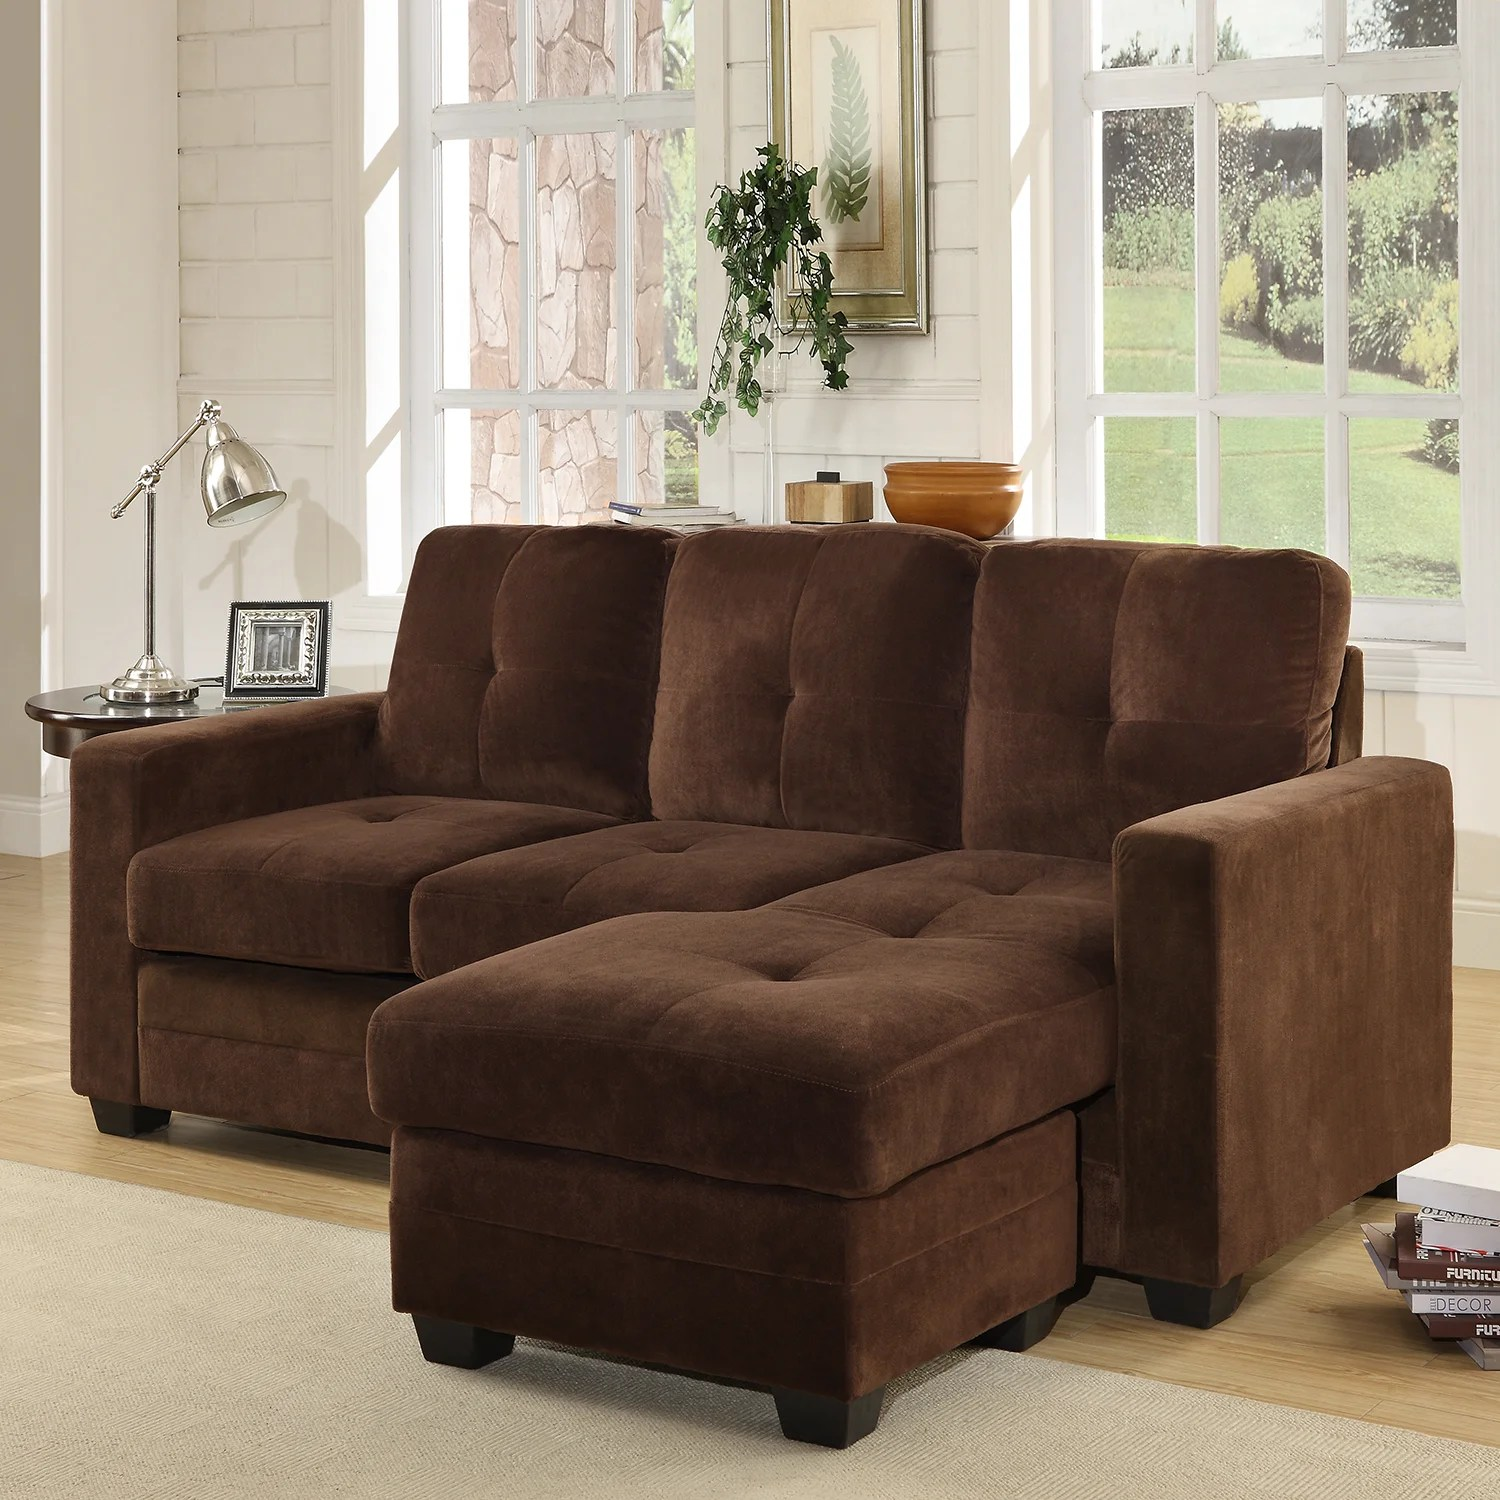 buchanan sofa with chaise most comfortable affordable shop microfiber sectional free shipping today overstock com 7330204